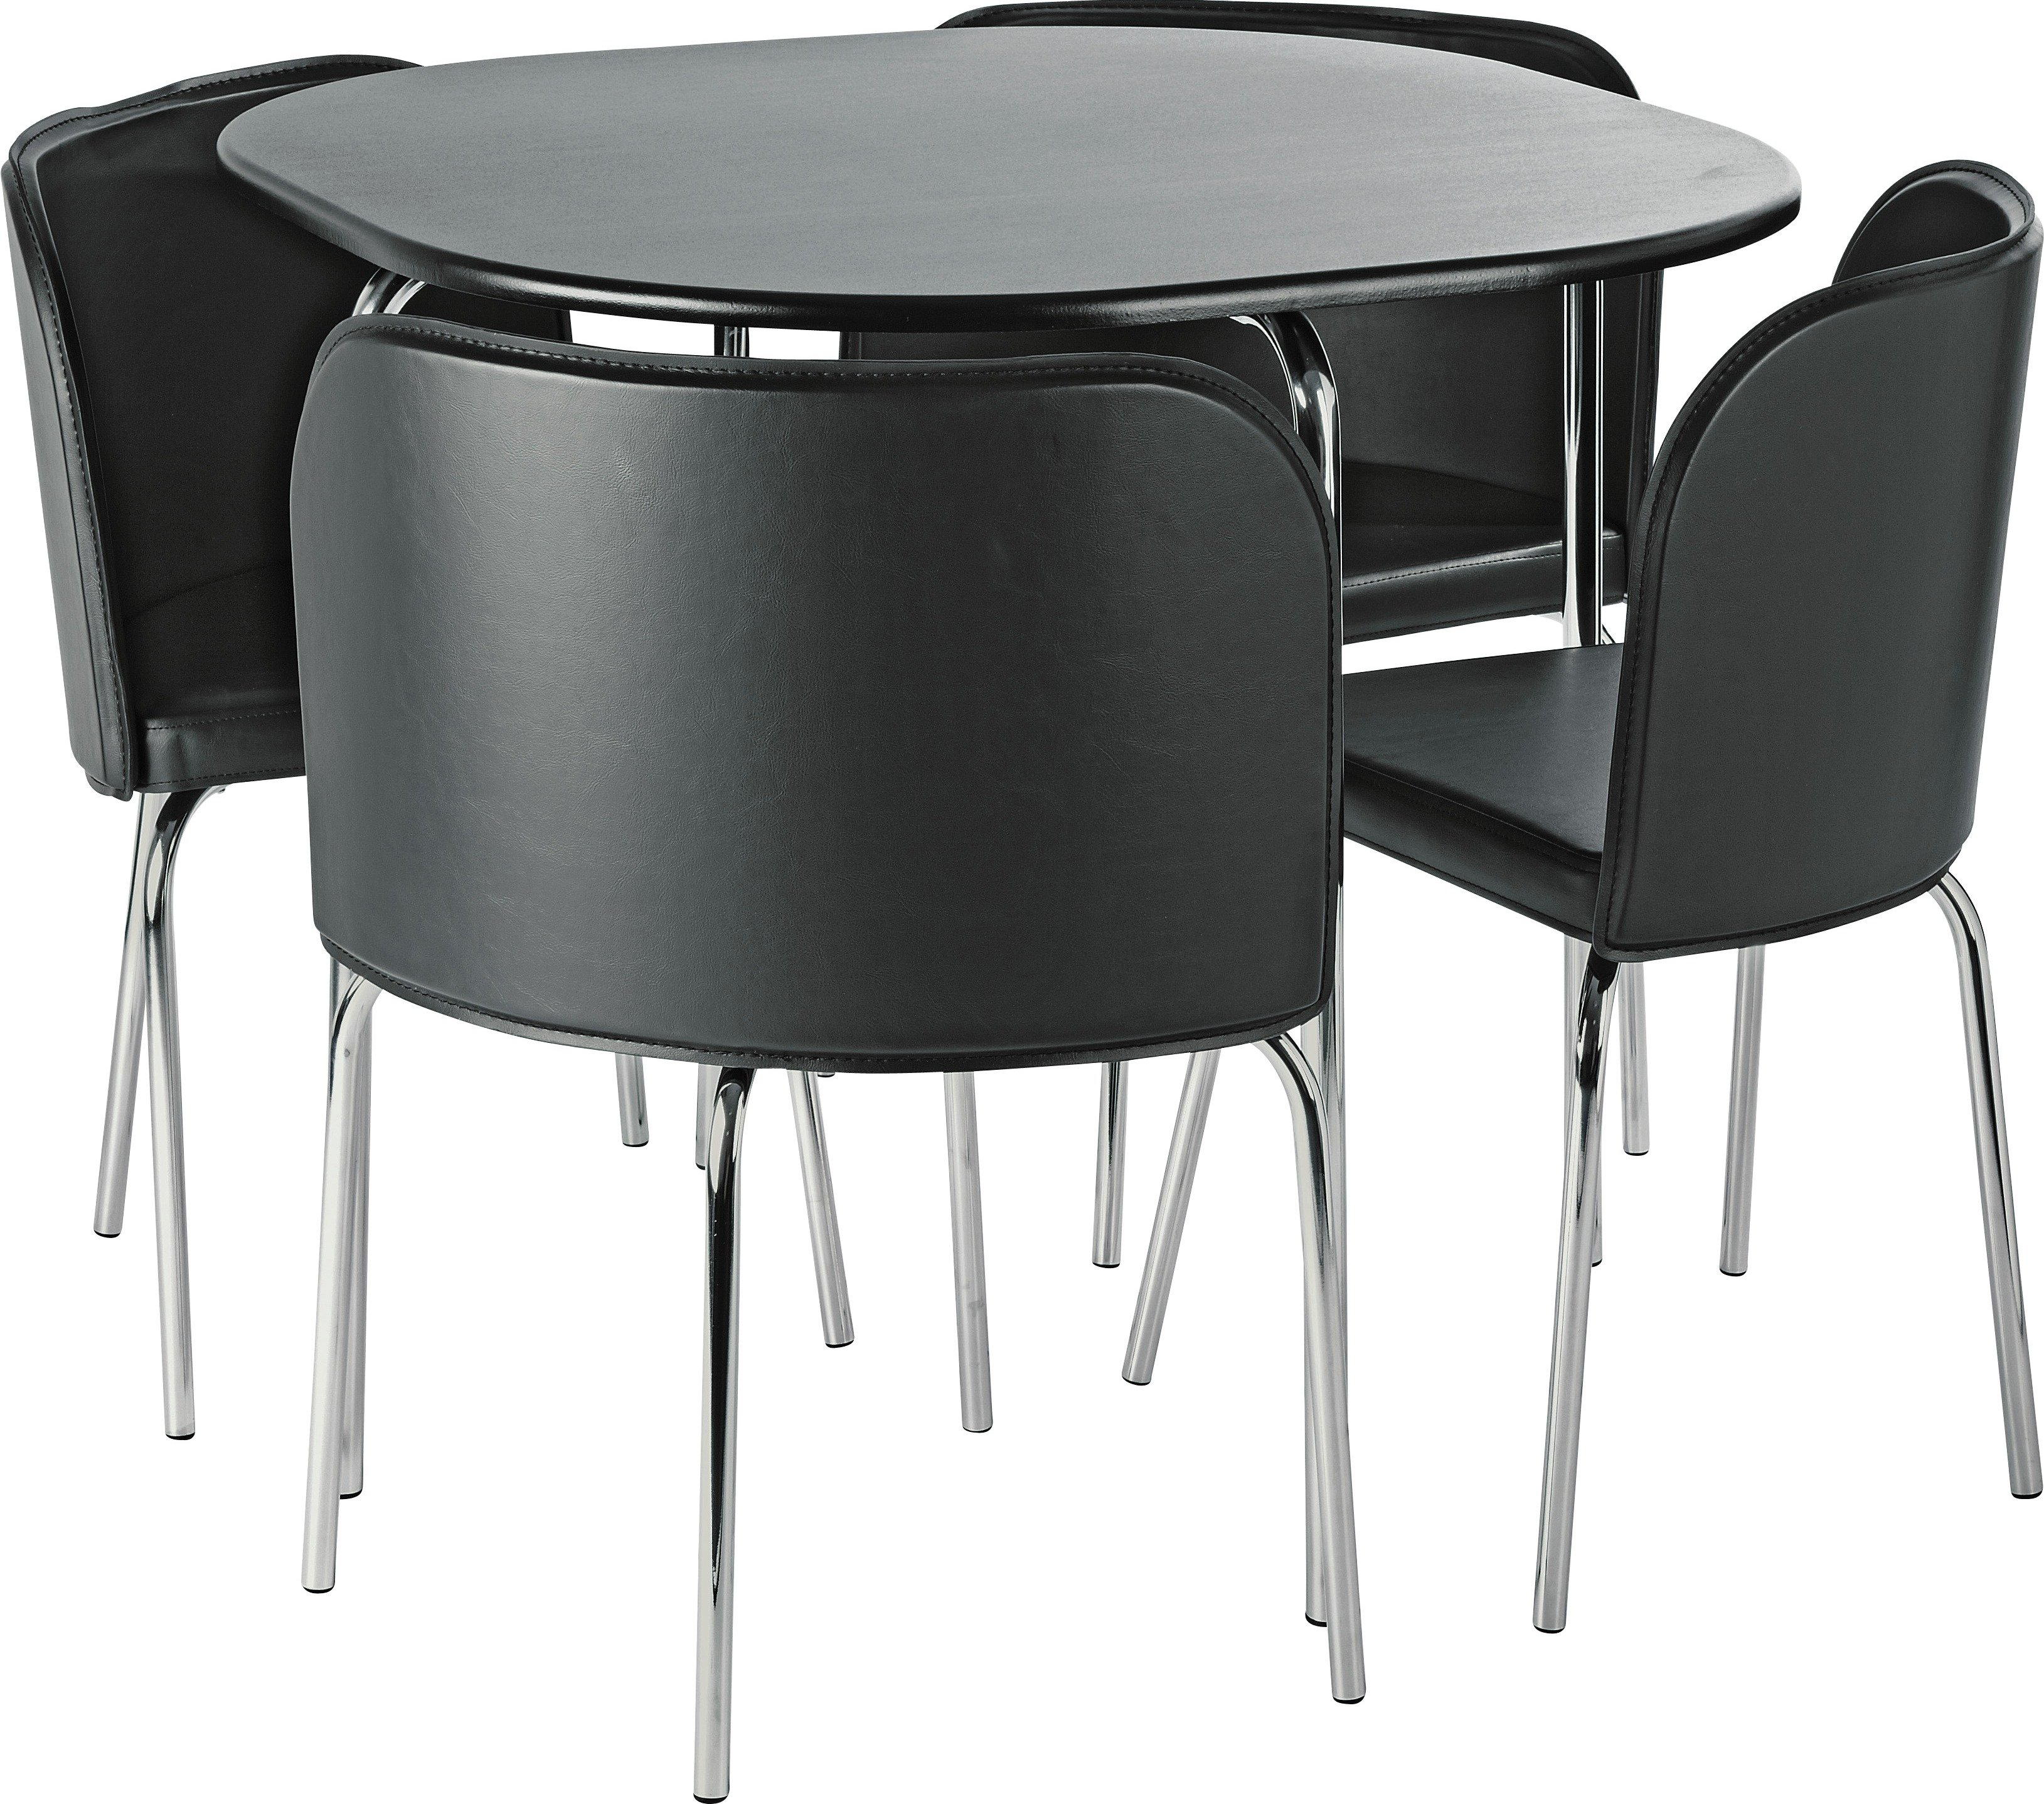 Dining Table buy hygena amparo dining table & 4 chairs - black at argos.co.uk